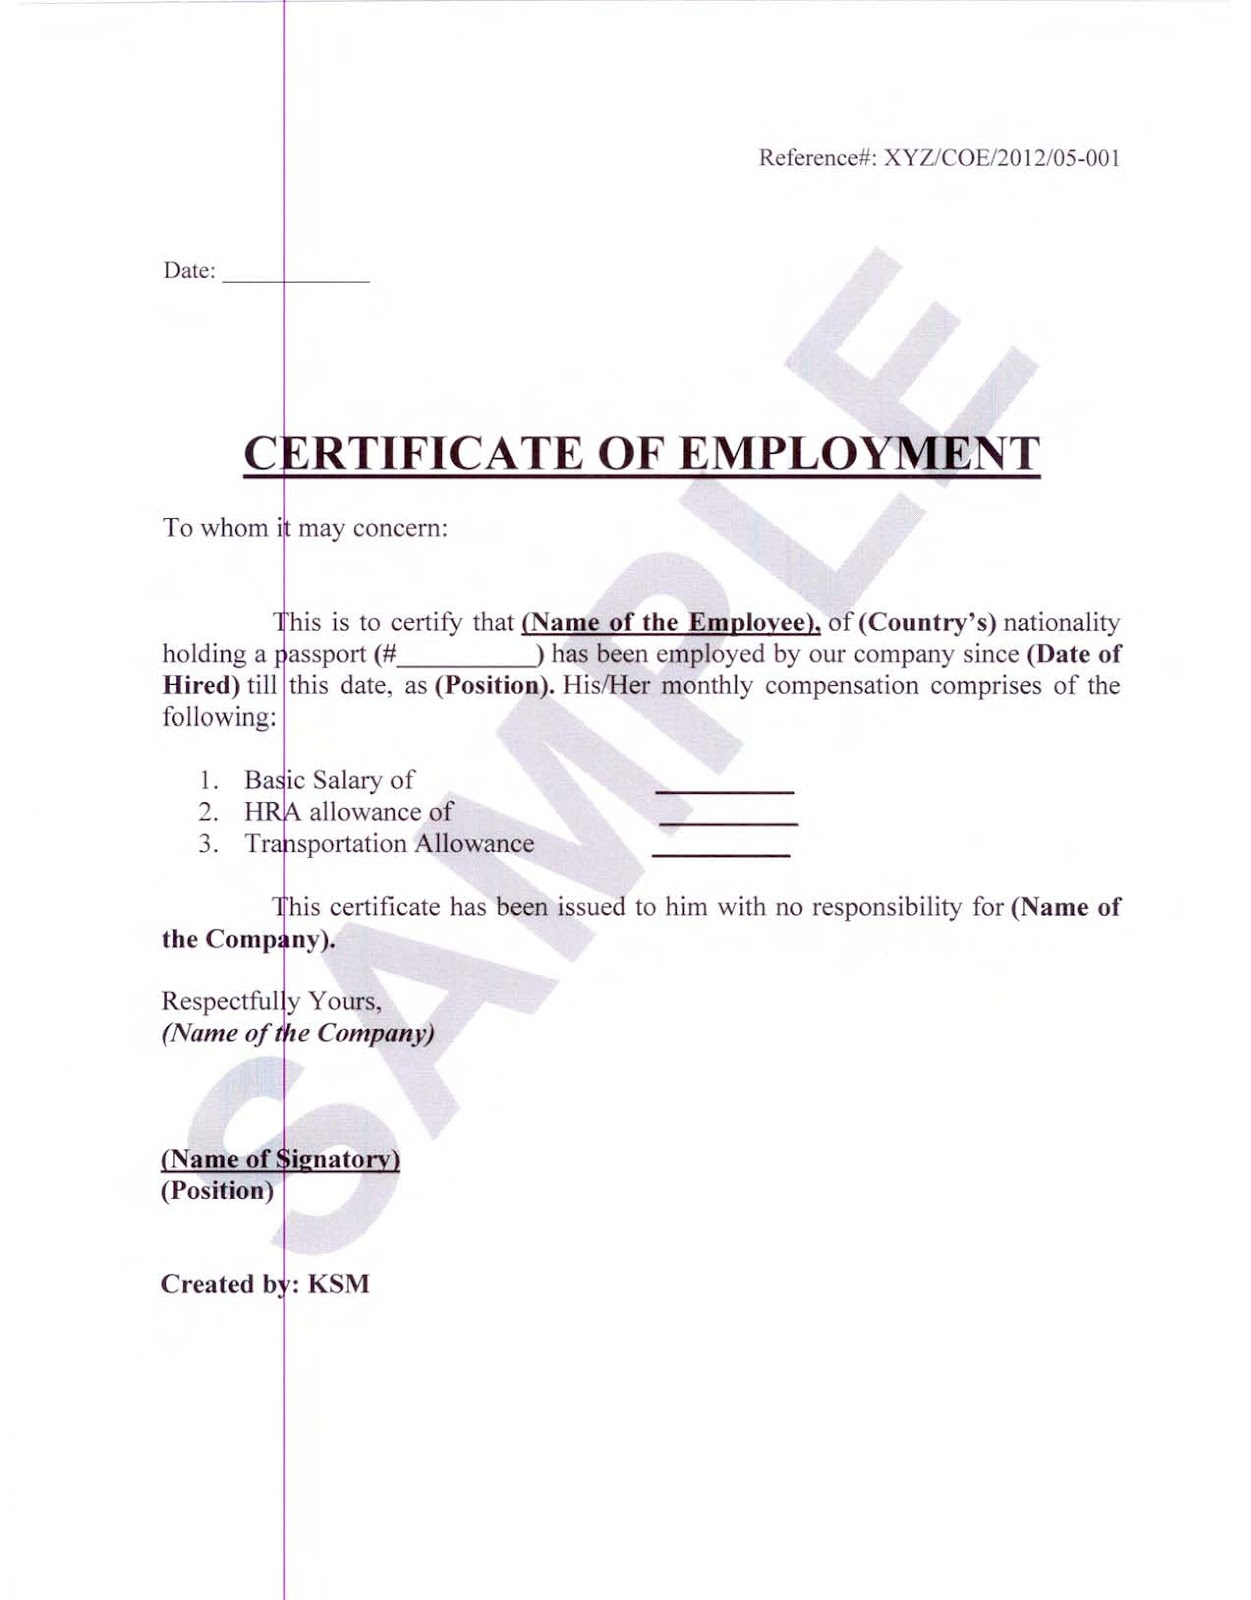 Employee Working Certificate Format Free Sop Template To Do List